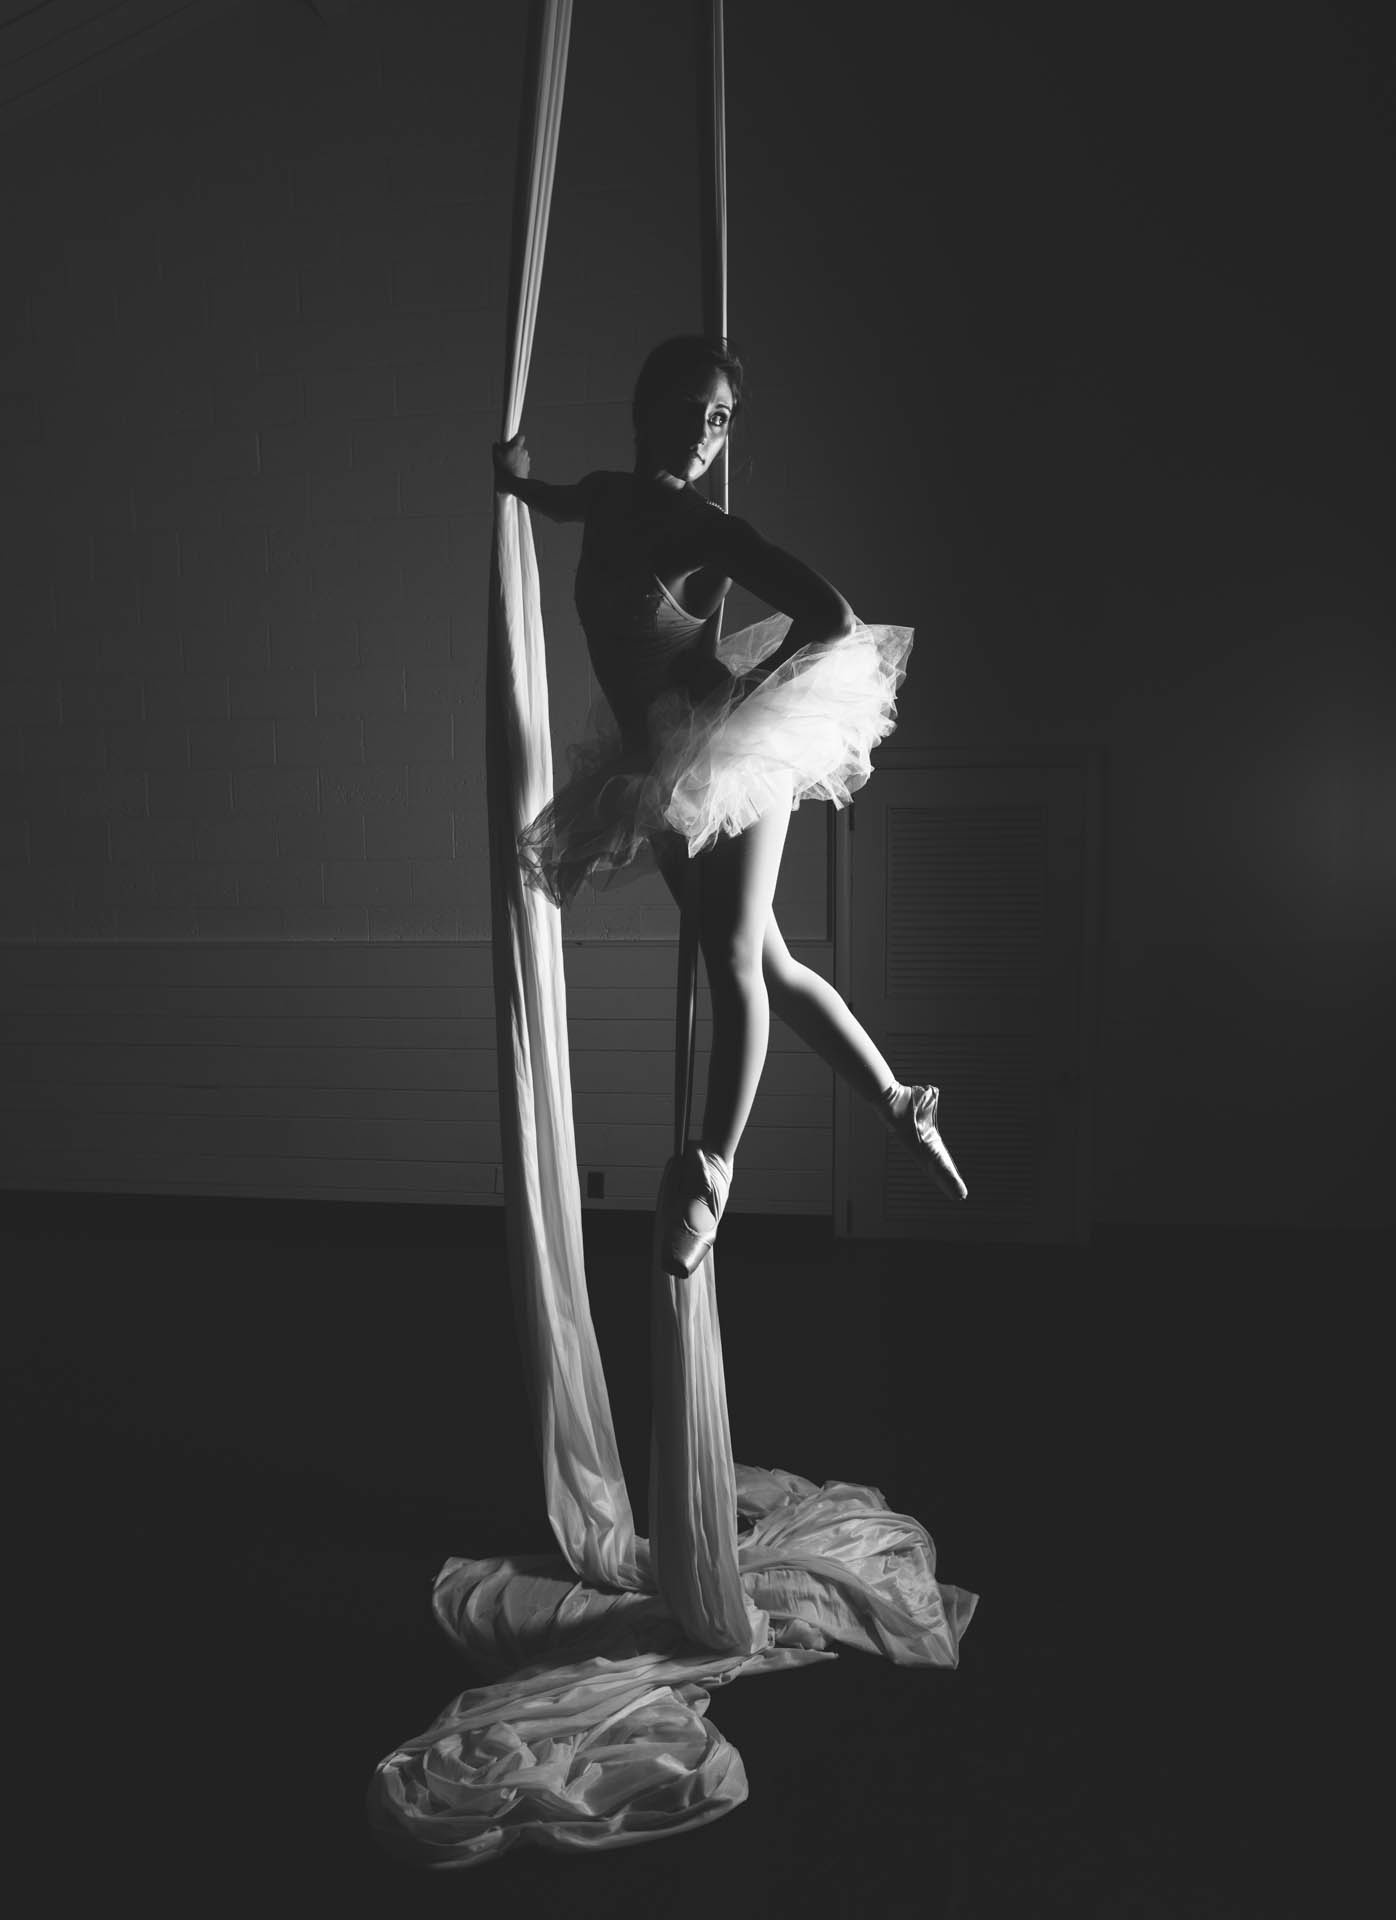 shannon-ballerina-pointe-shoes-white-tutu-on-dance-silks-award-winning-0876